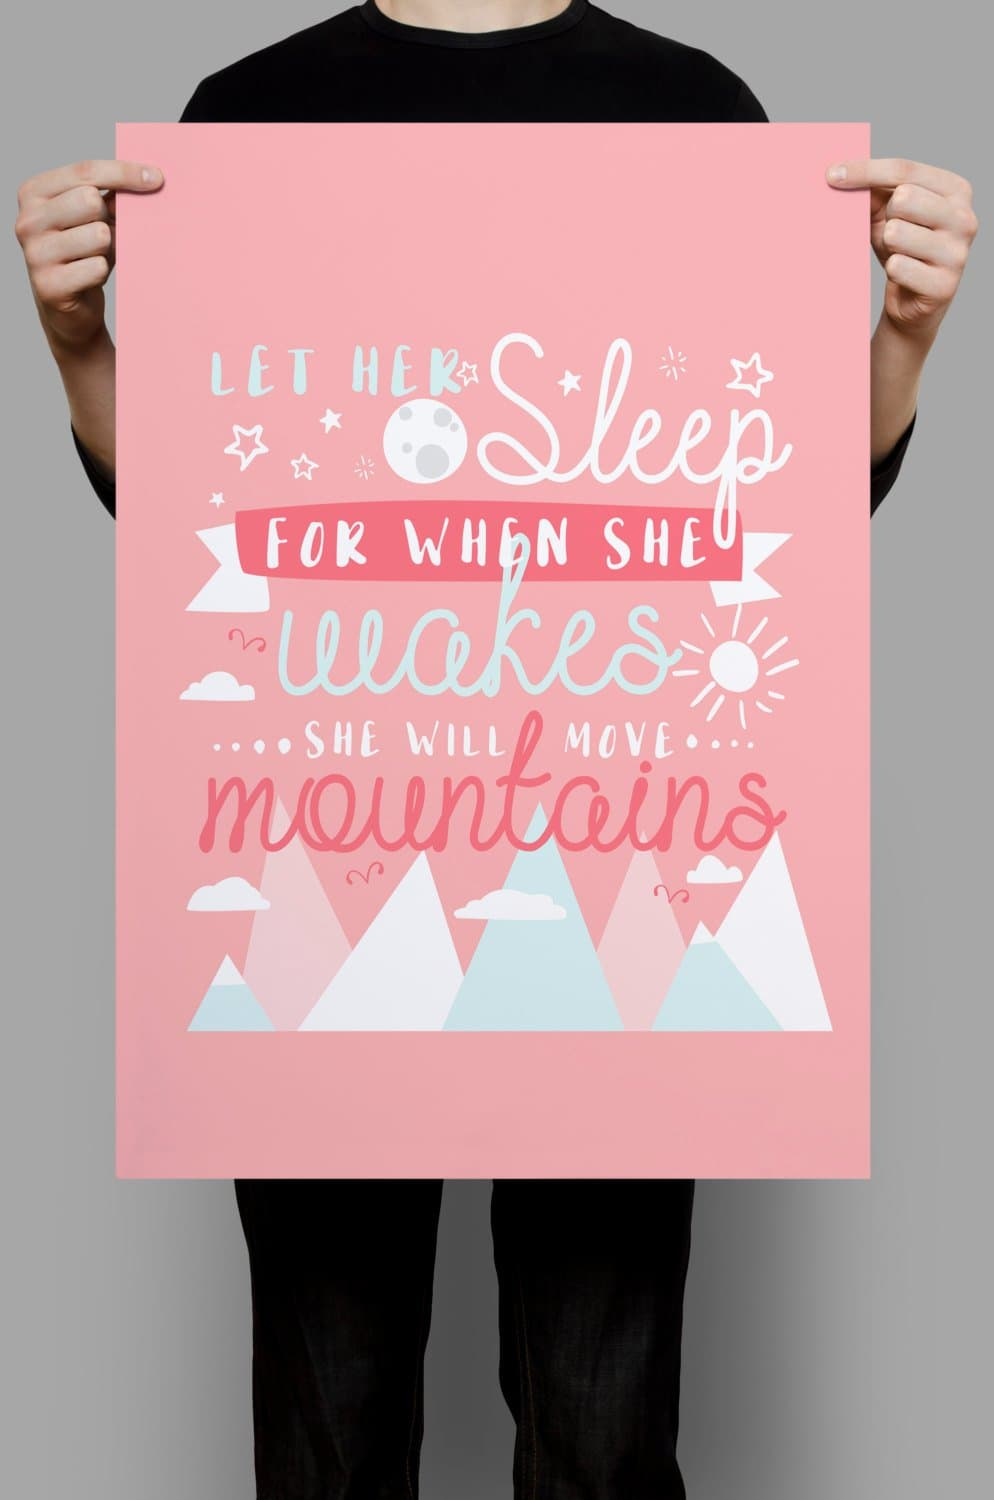 Let Her Sleep for When She Wakes, Art Prints, Wall Prints, Nursery Wall Art, Girl Room Decorations, Girl Nursery Decor, Pink Print, Pink Art